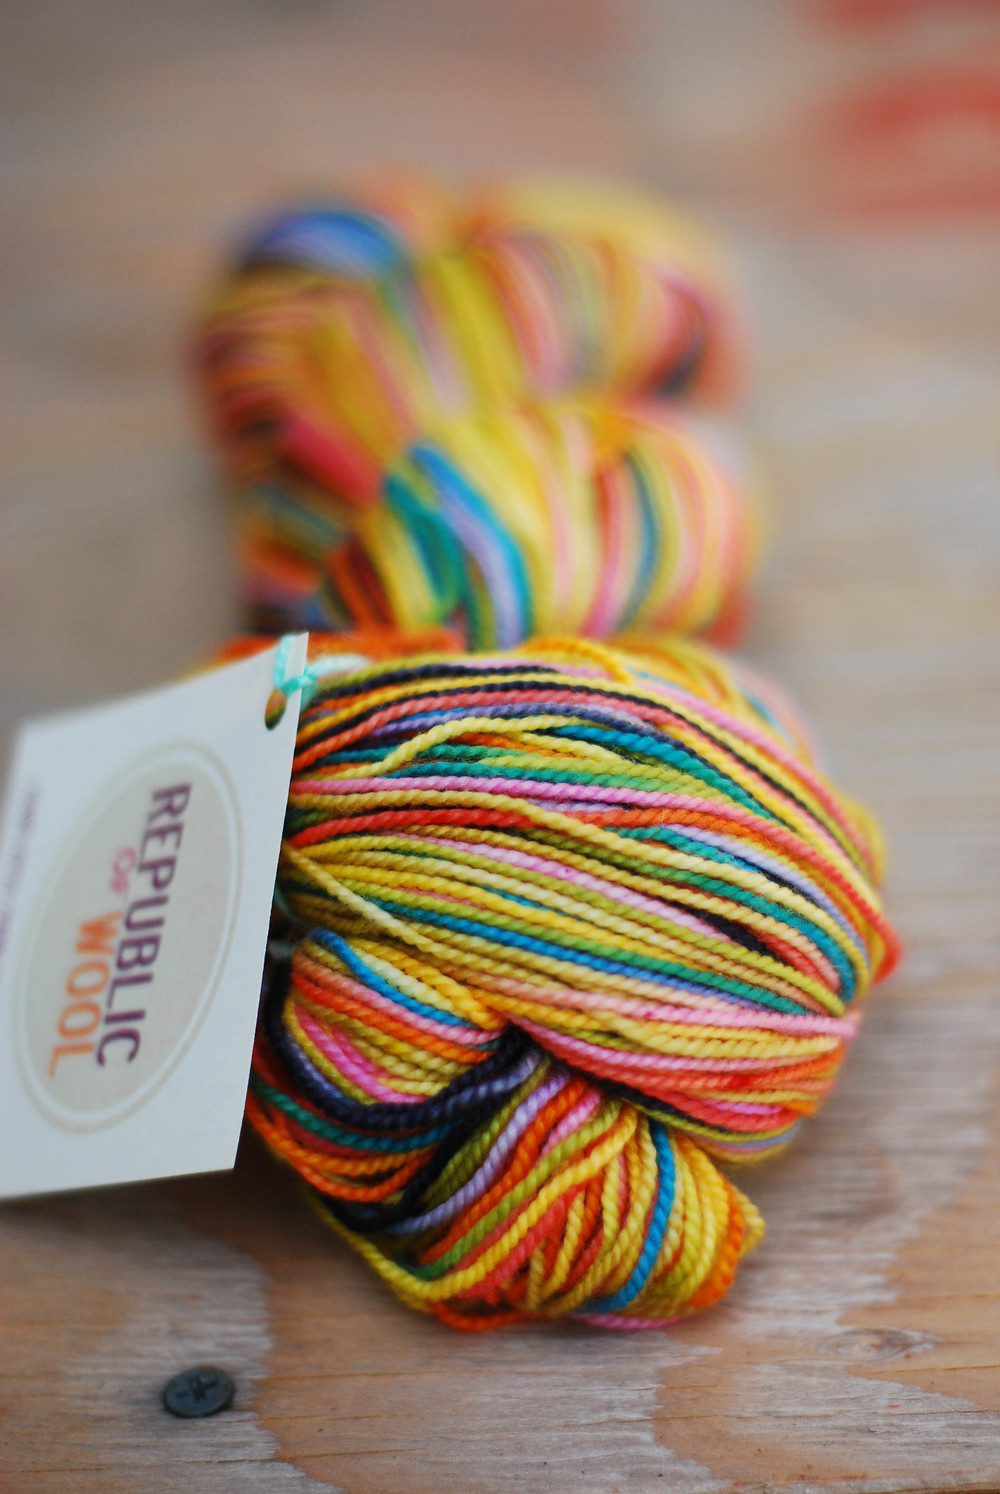 Republic of Wool in Motley!